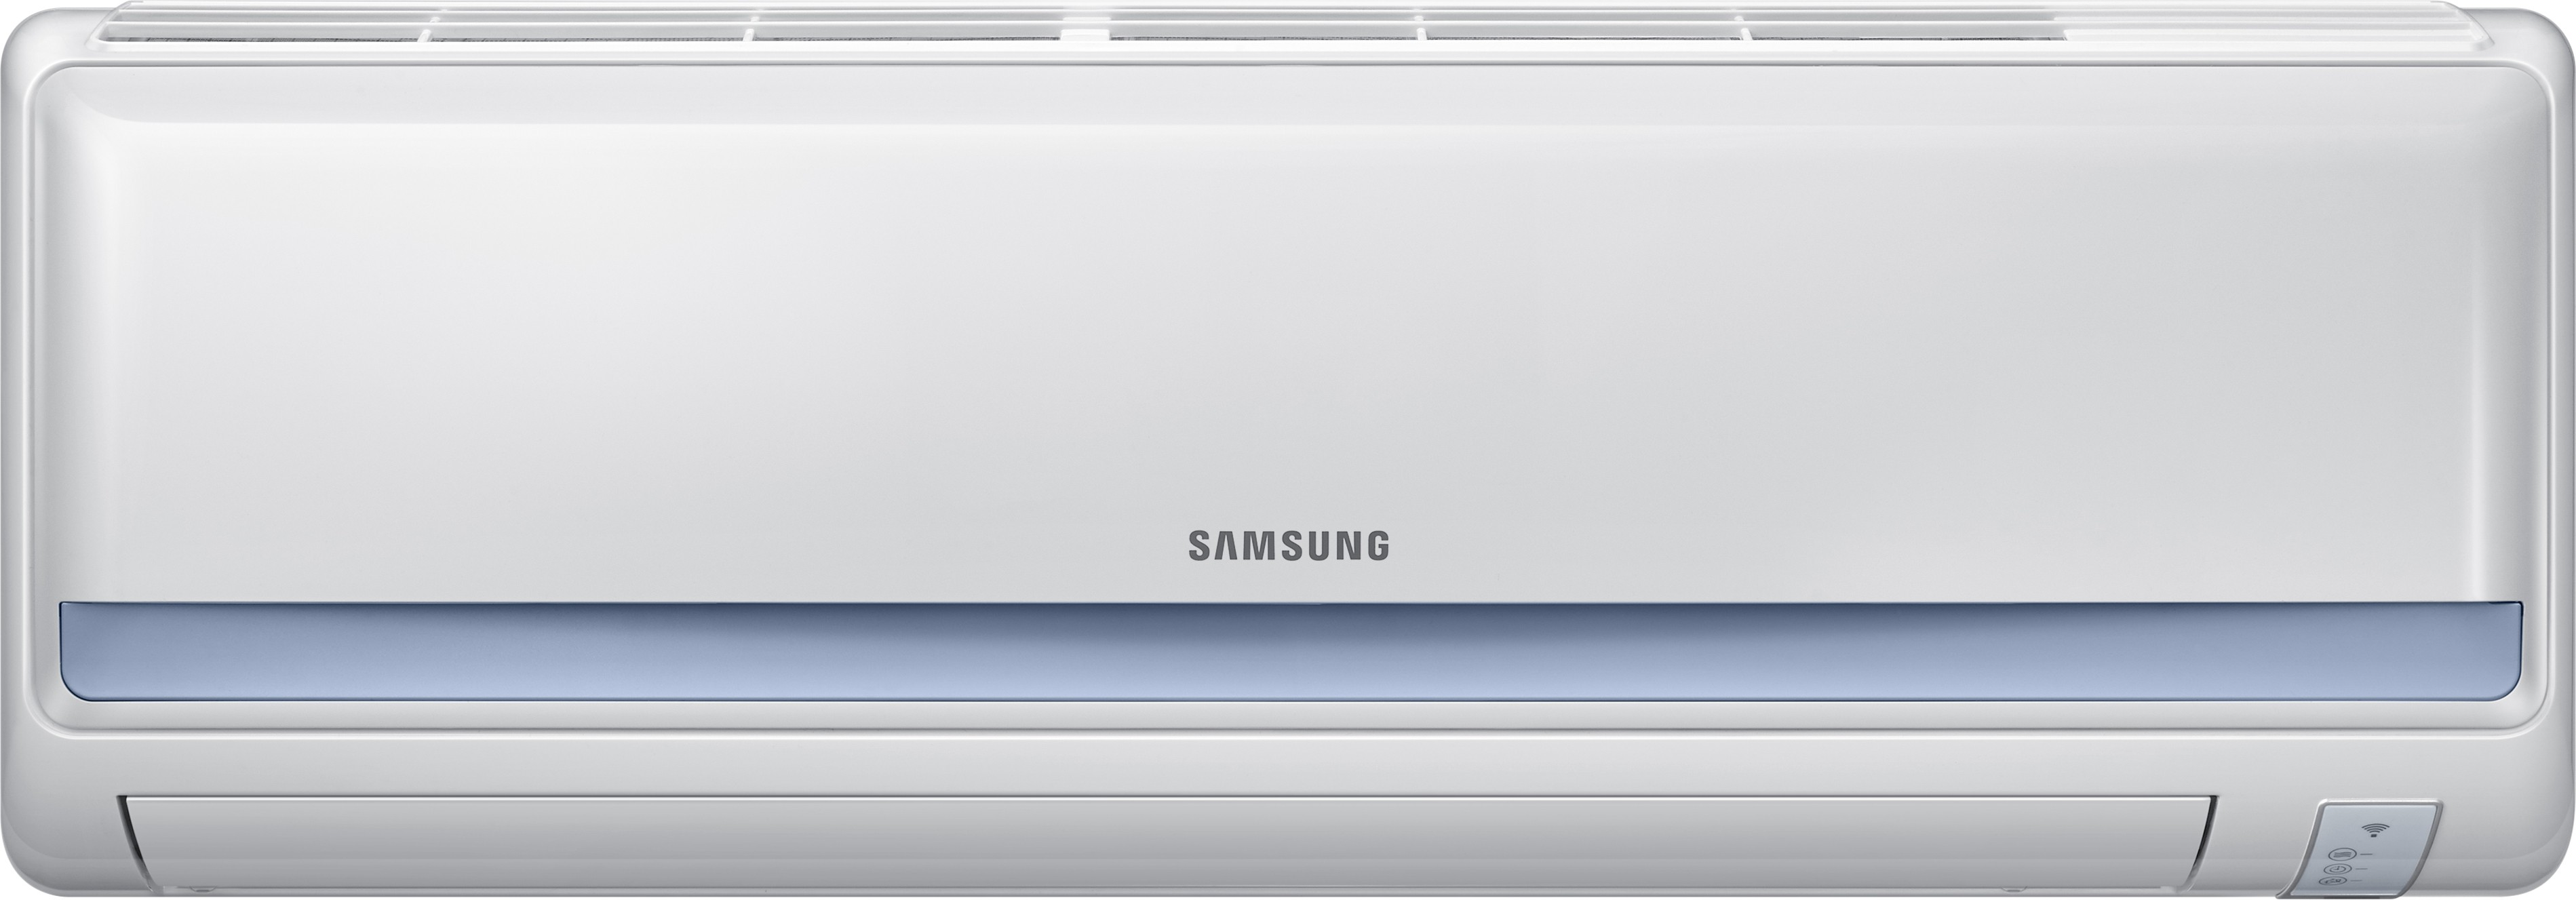 Deals - Bangalore - From ₹29,990 <br> Samsung Air Conditioners<br> Category - home_kitchen<br> Business - Flipkart.com